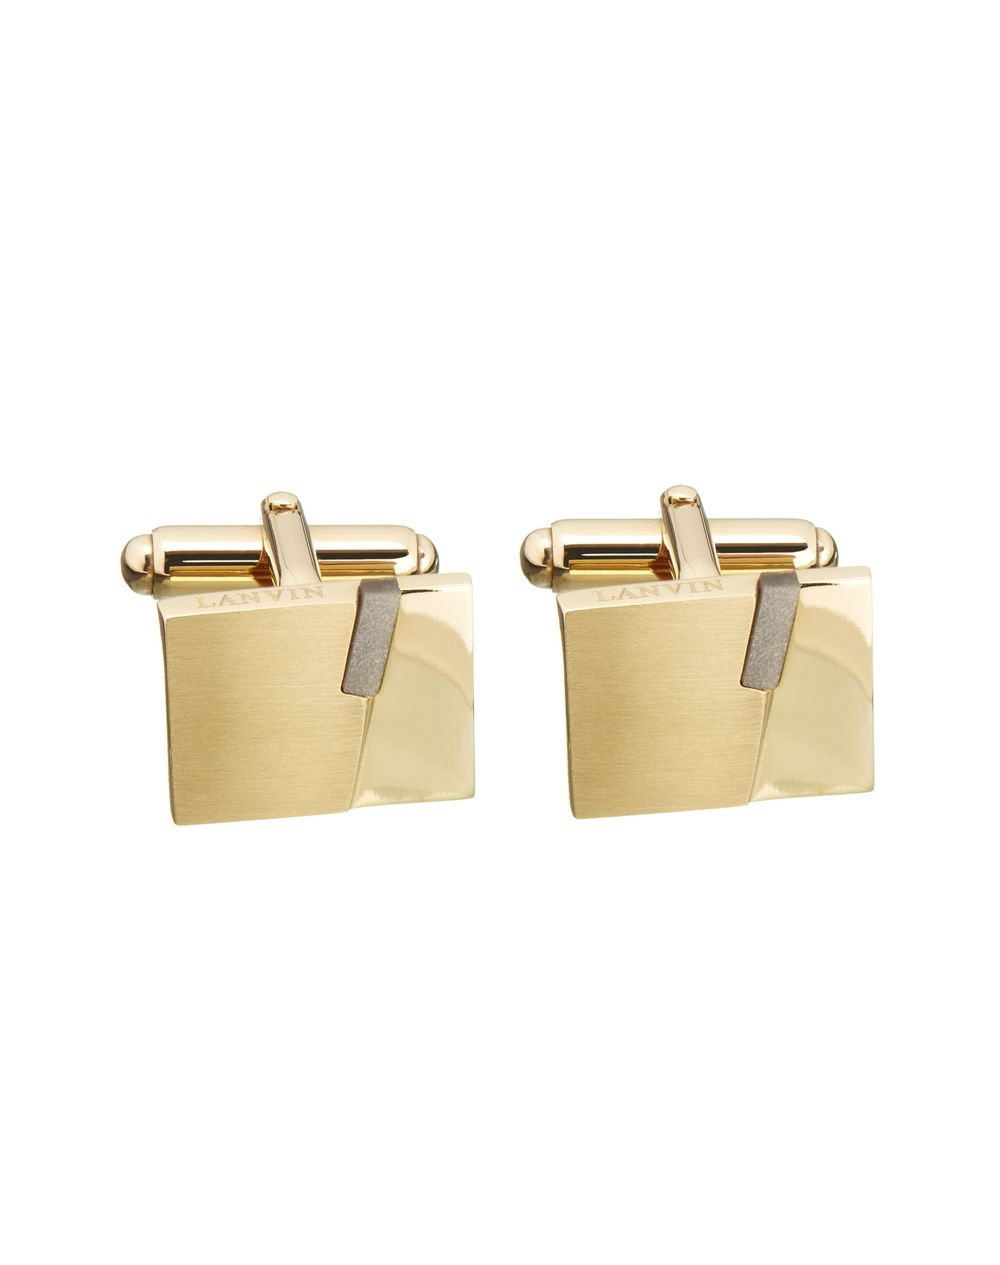 RECTANGULAR CUFF LINKS WITH OBSIDIAN  - Lanvin